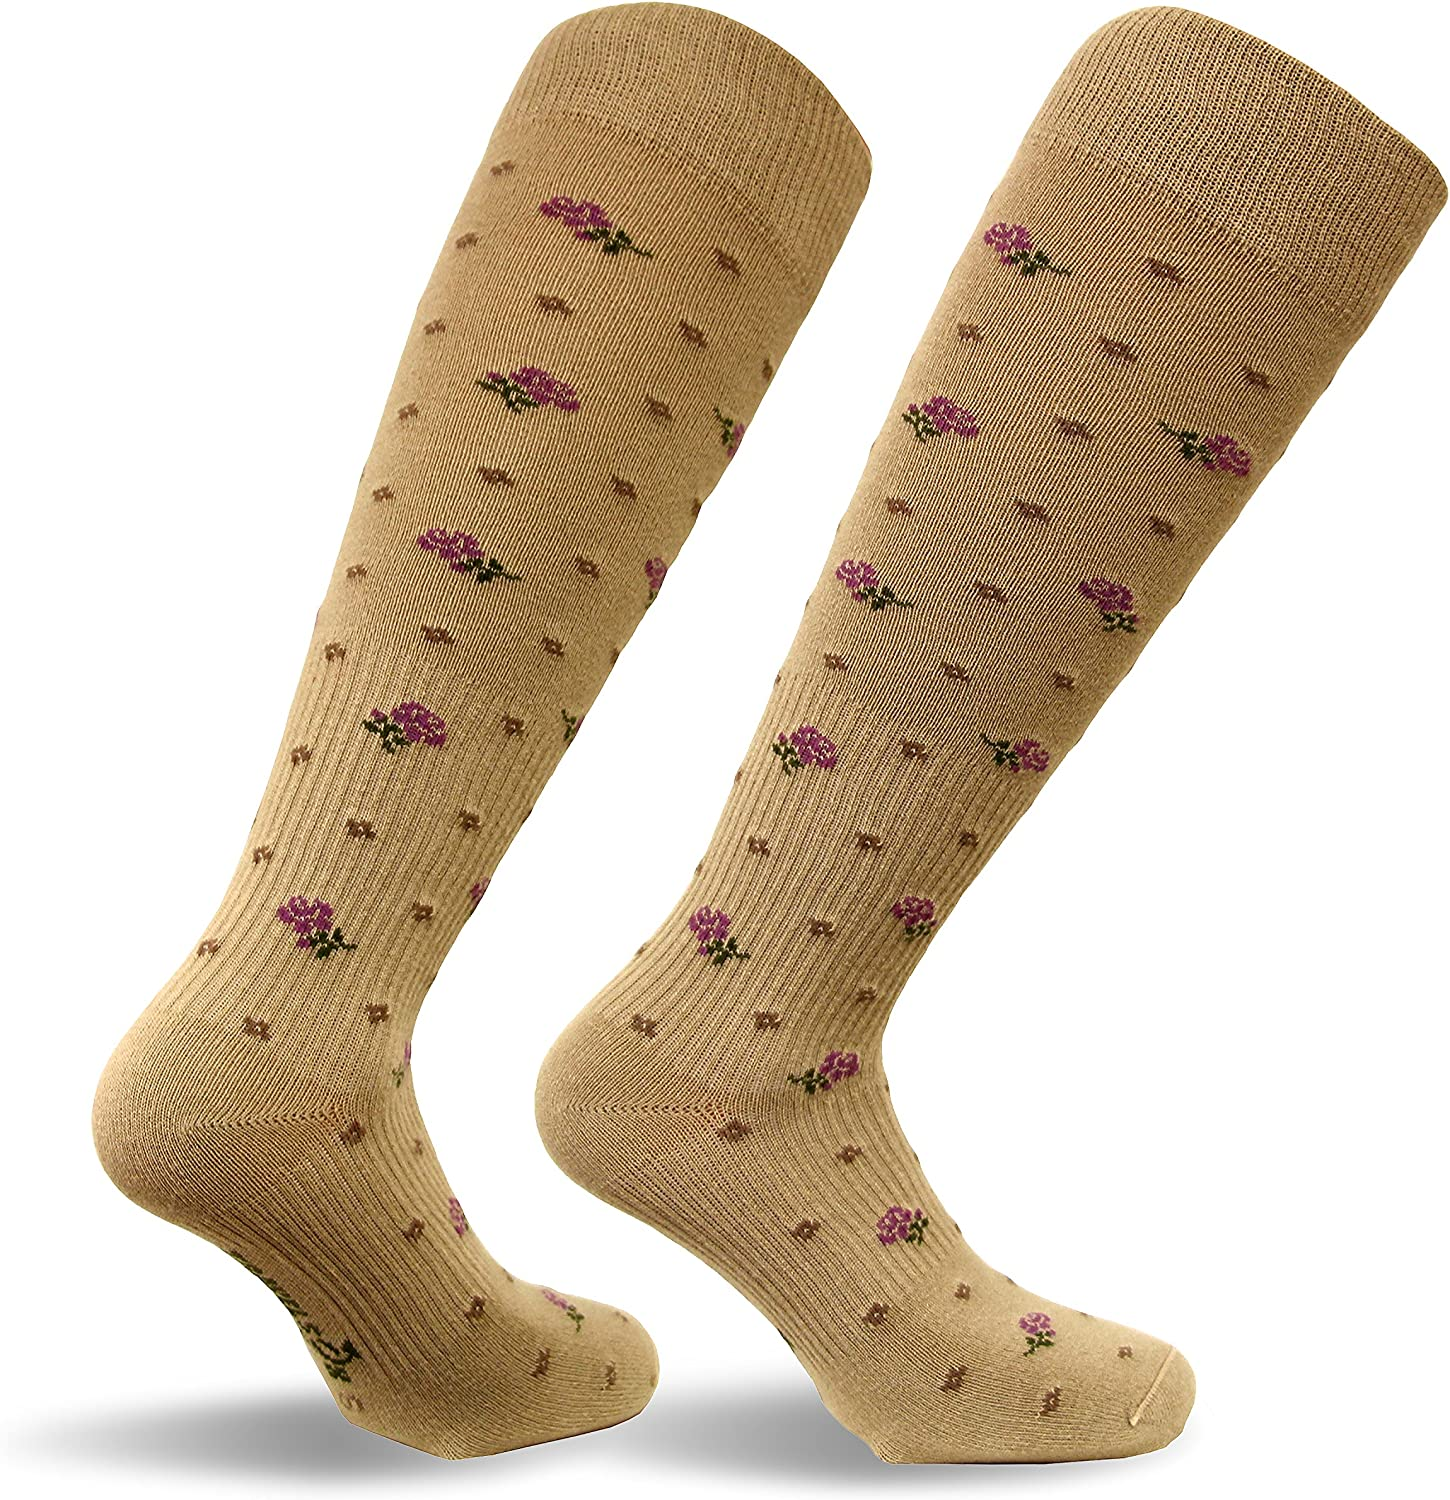 Travel Play, Travelsox Italy Ladies Graduated Compression Socks TS0867 Floral Womens Coolmax Dress